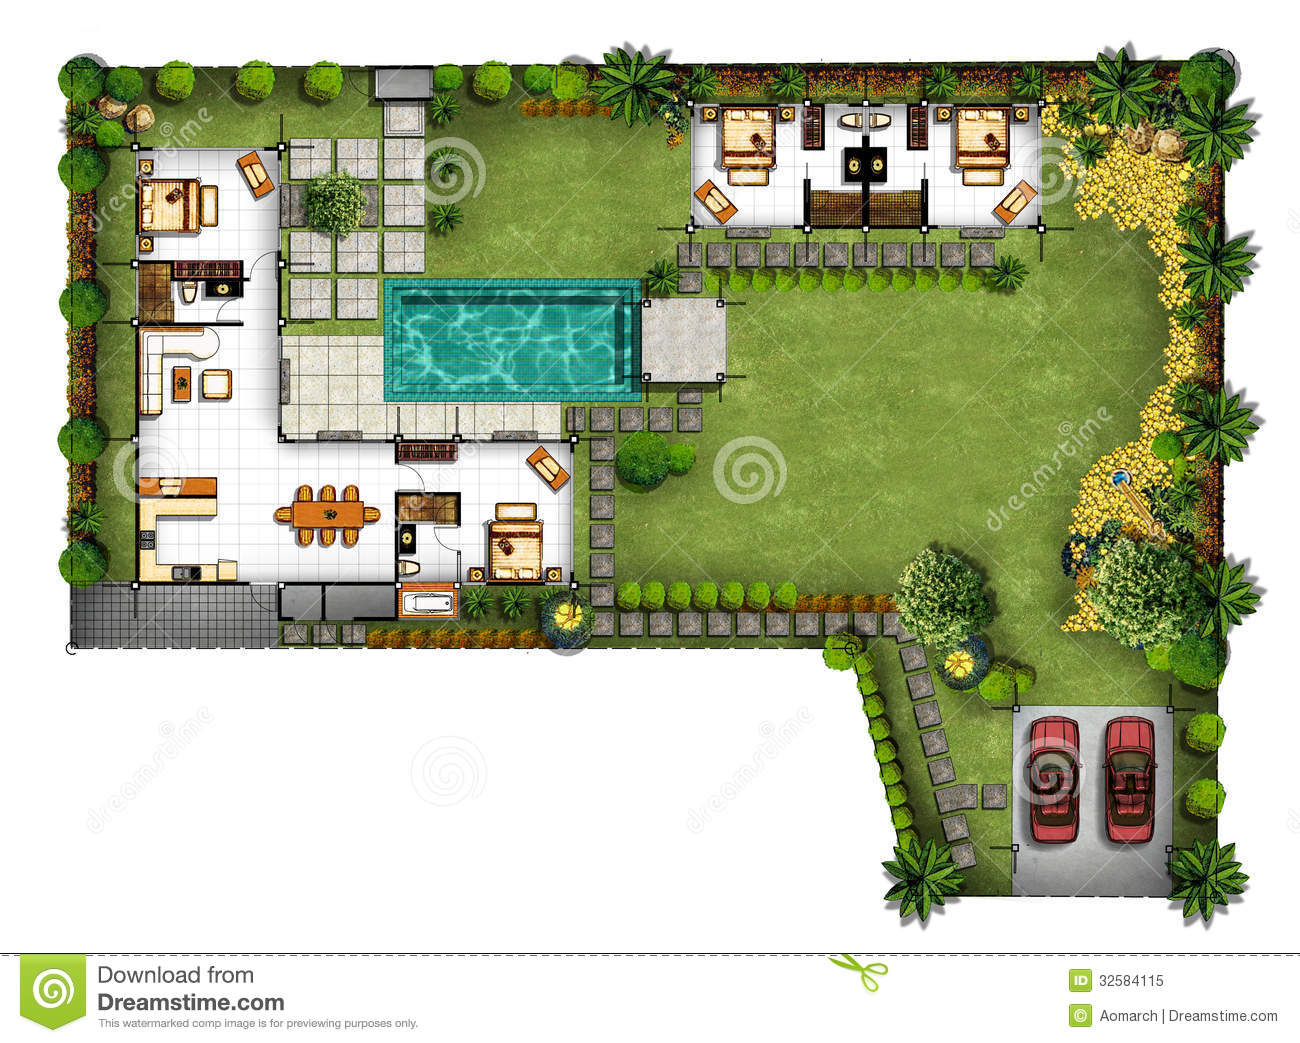 Plan de maison jardin for Amenager son jardin 3d gratuit